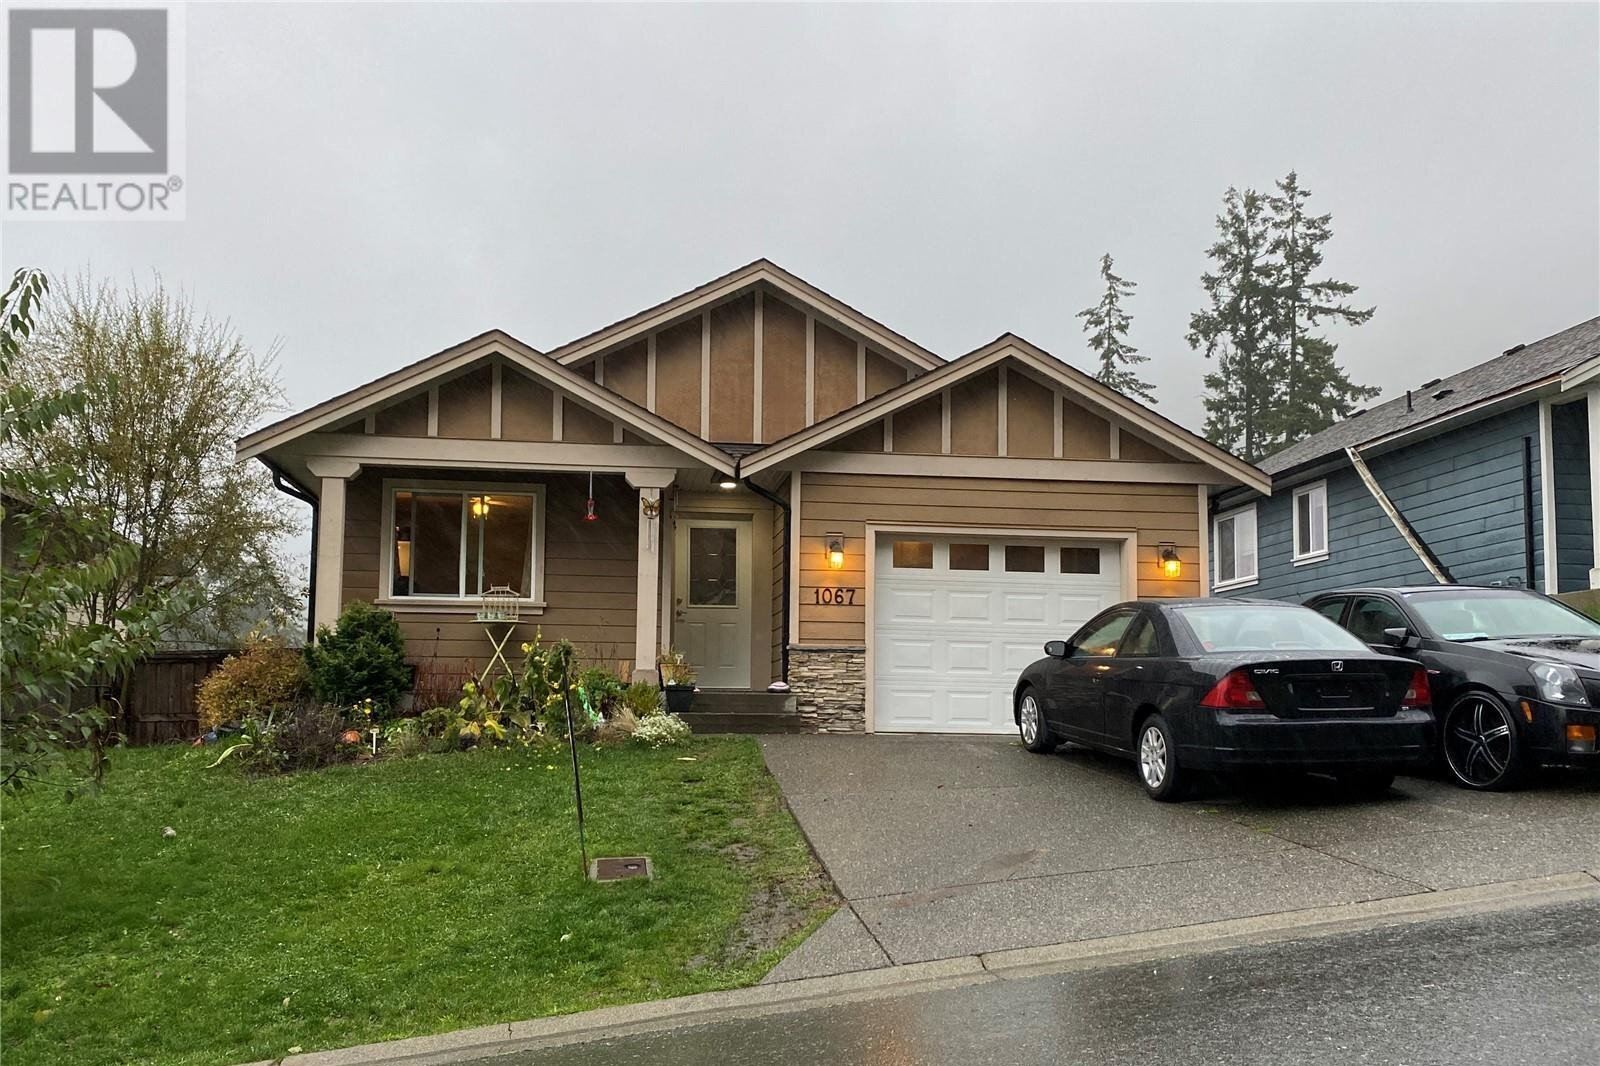 House for sale at 1067 Fitzgerald St Shawnigan Lake British Columbia - MLS: 858846